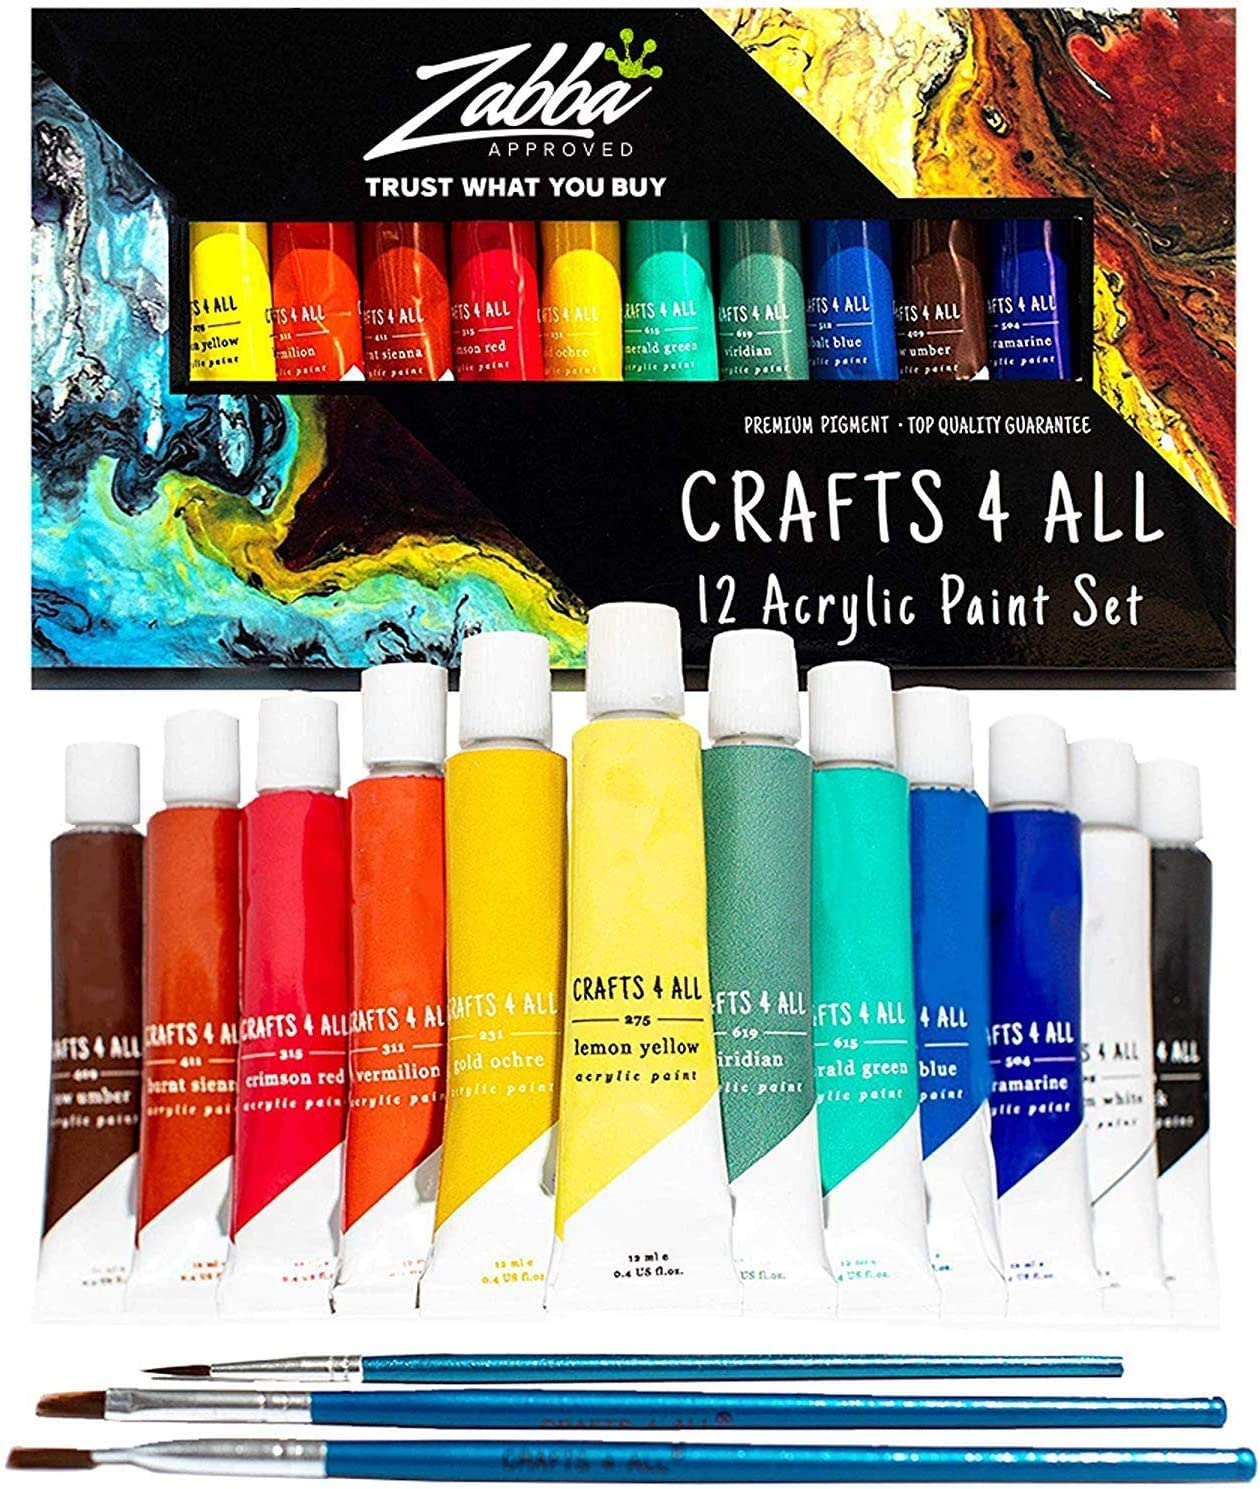 Amazon Com Acrylic Paint Set 12 Colors By Crafts 4 All Perfect For Canvas Wood Ceramic Fabric Non Toxic Vibrant Colors Rich Pigments For Beginners Students Professional Artist Arts Crafts